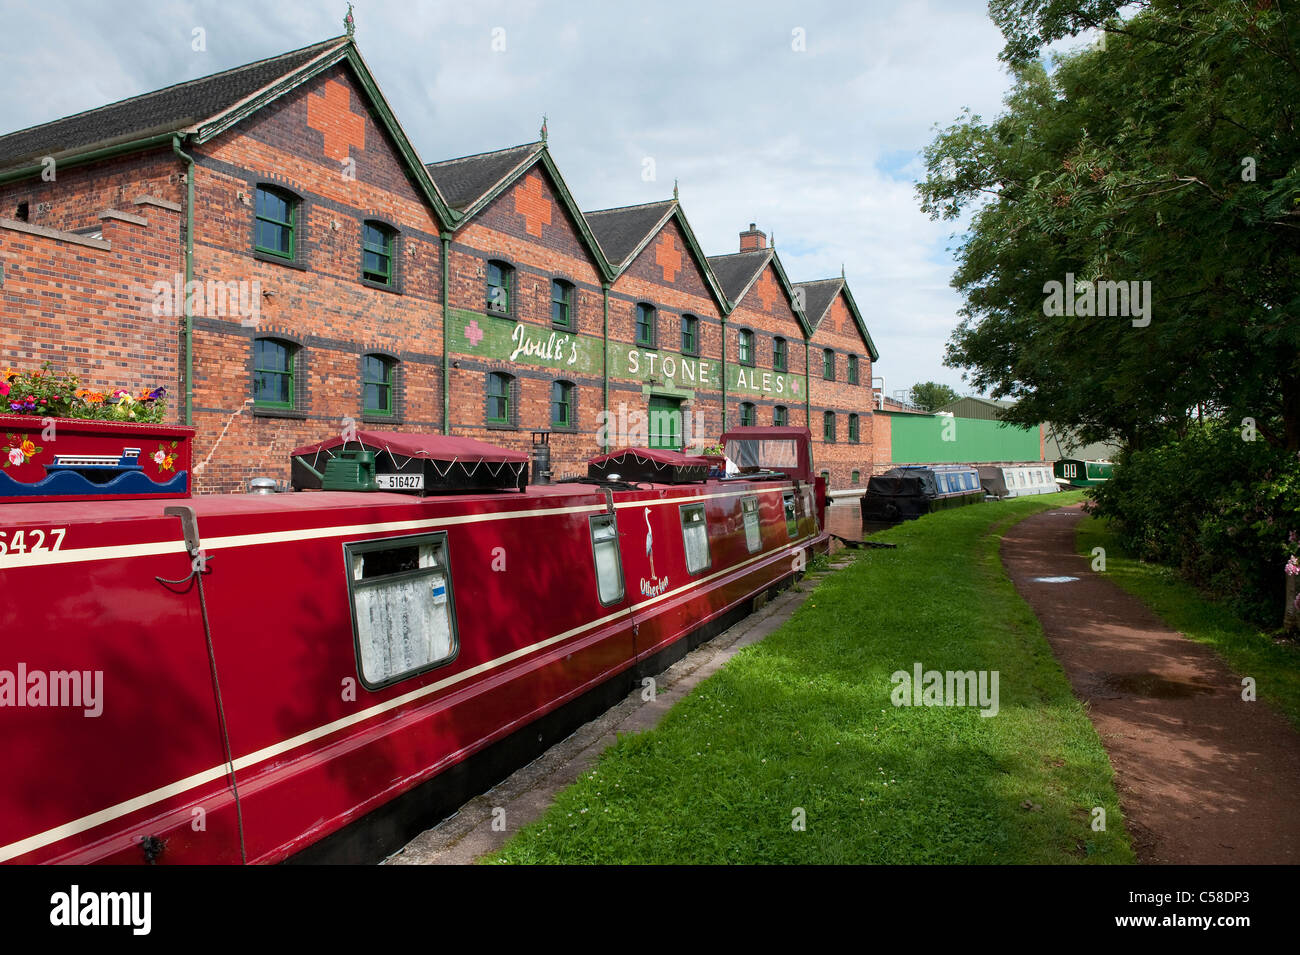 joules stone ales brewery, trent and mersey canal, staffordshire, england - Stock Image